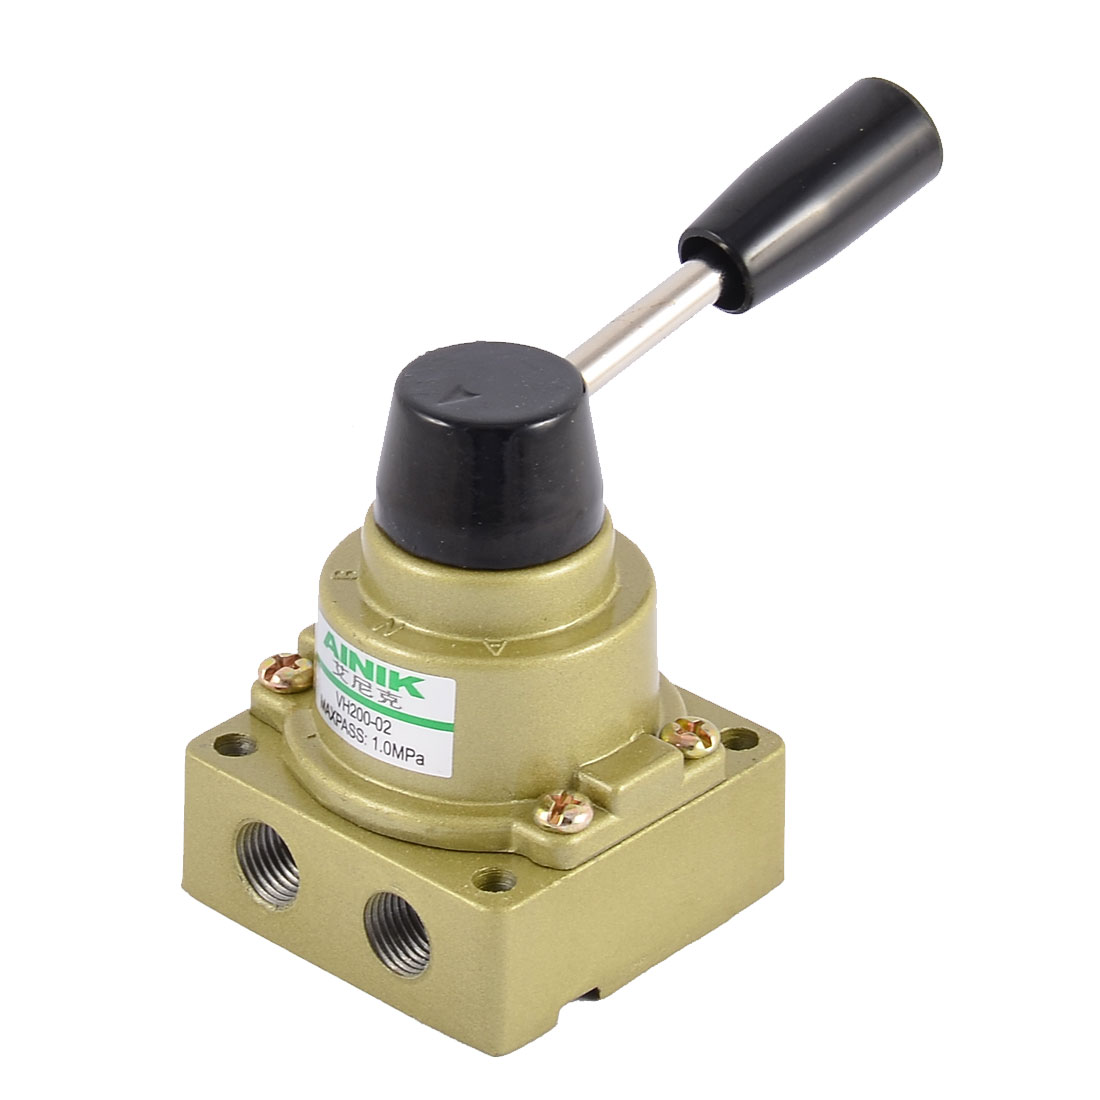 ФОТО UXCELL Product Keywords 1/4 Bsp Center Closed 3 Positions 3 Ports Manual Hand Lever Pneumatic Valve